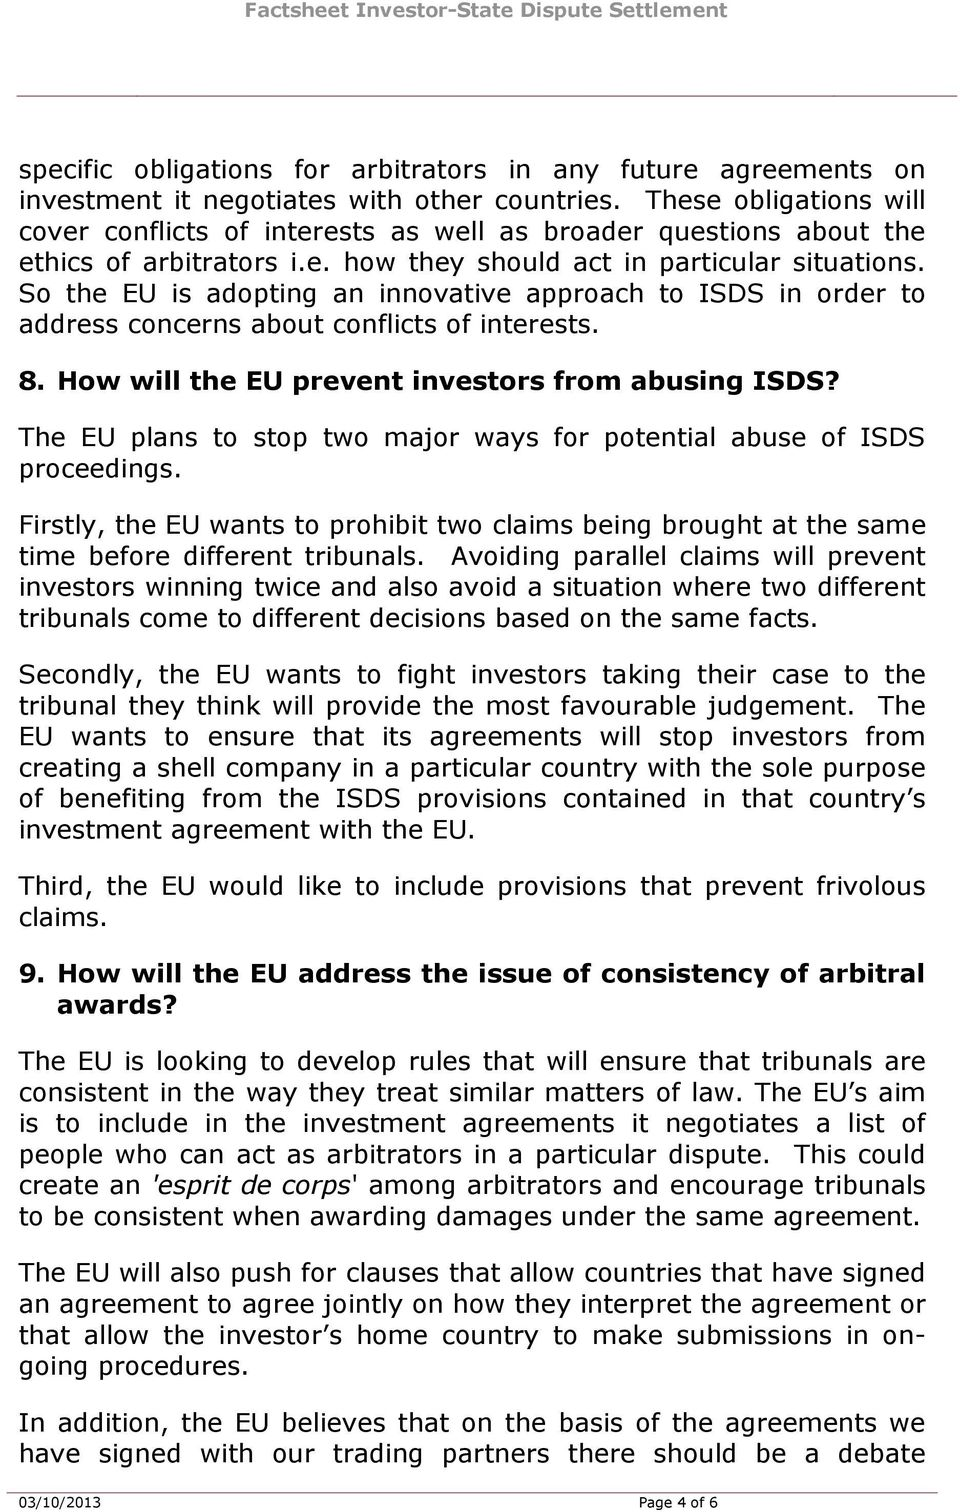 So the EU is adopting an innovative approach to ISDS in order to address concerns about conflicts of interests. 8. How will the EU prevent investors from abusing ISDS?